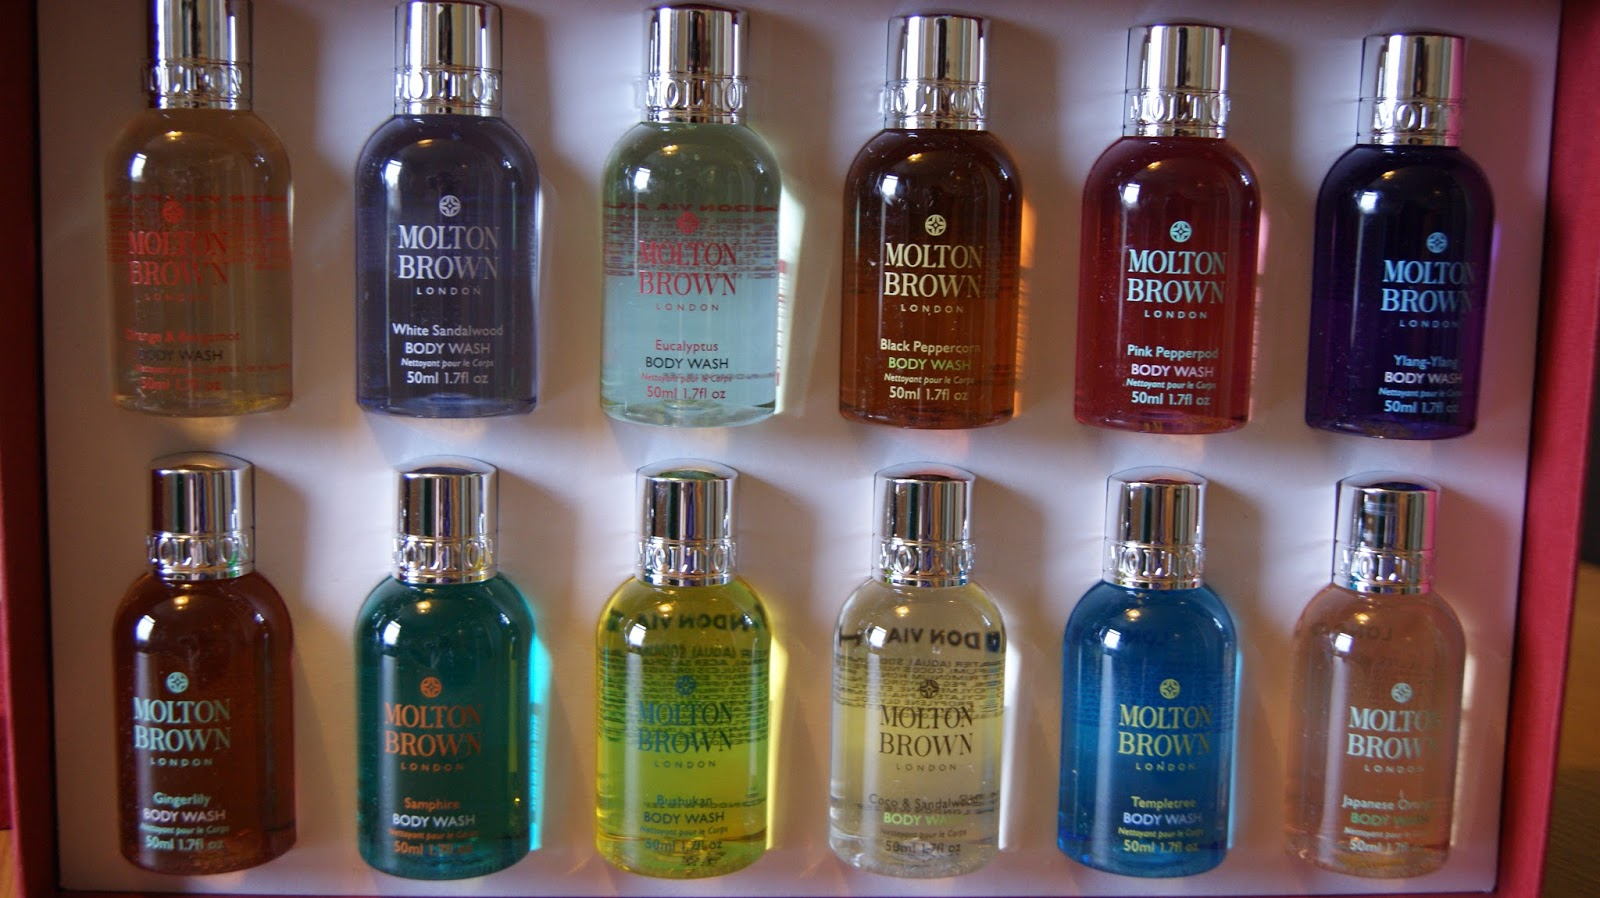 Molton Brown Stocking Fillers Set Review